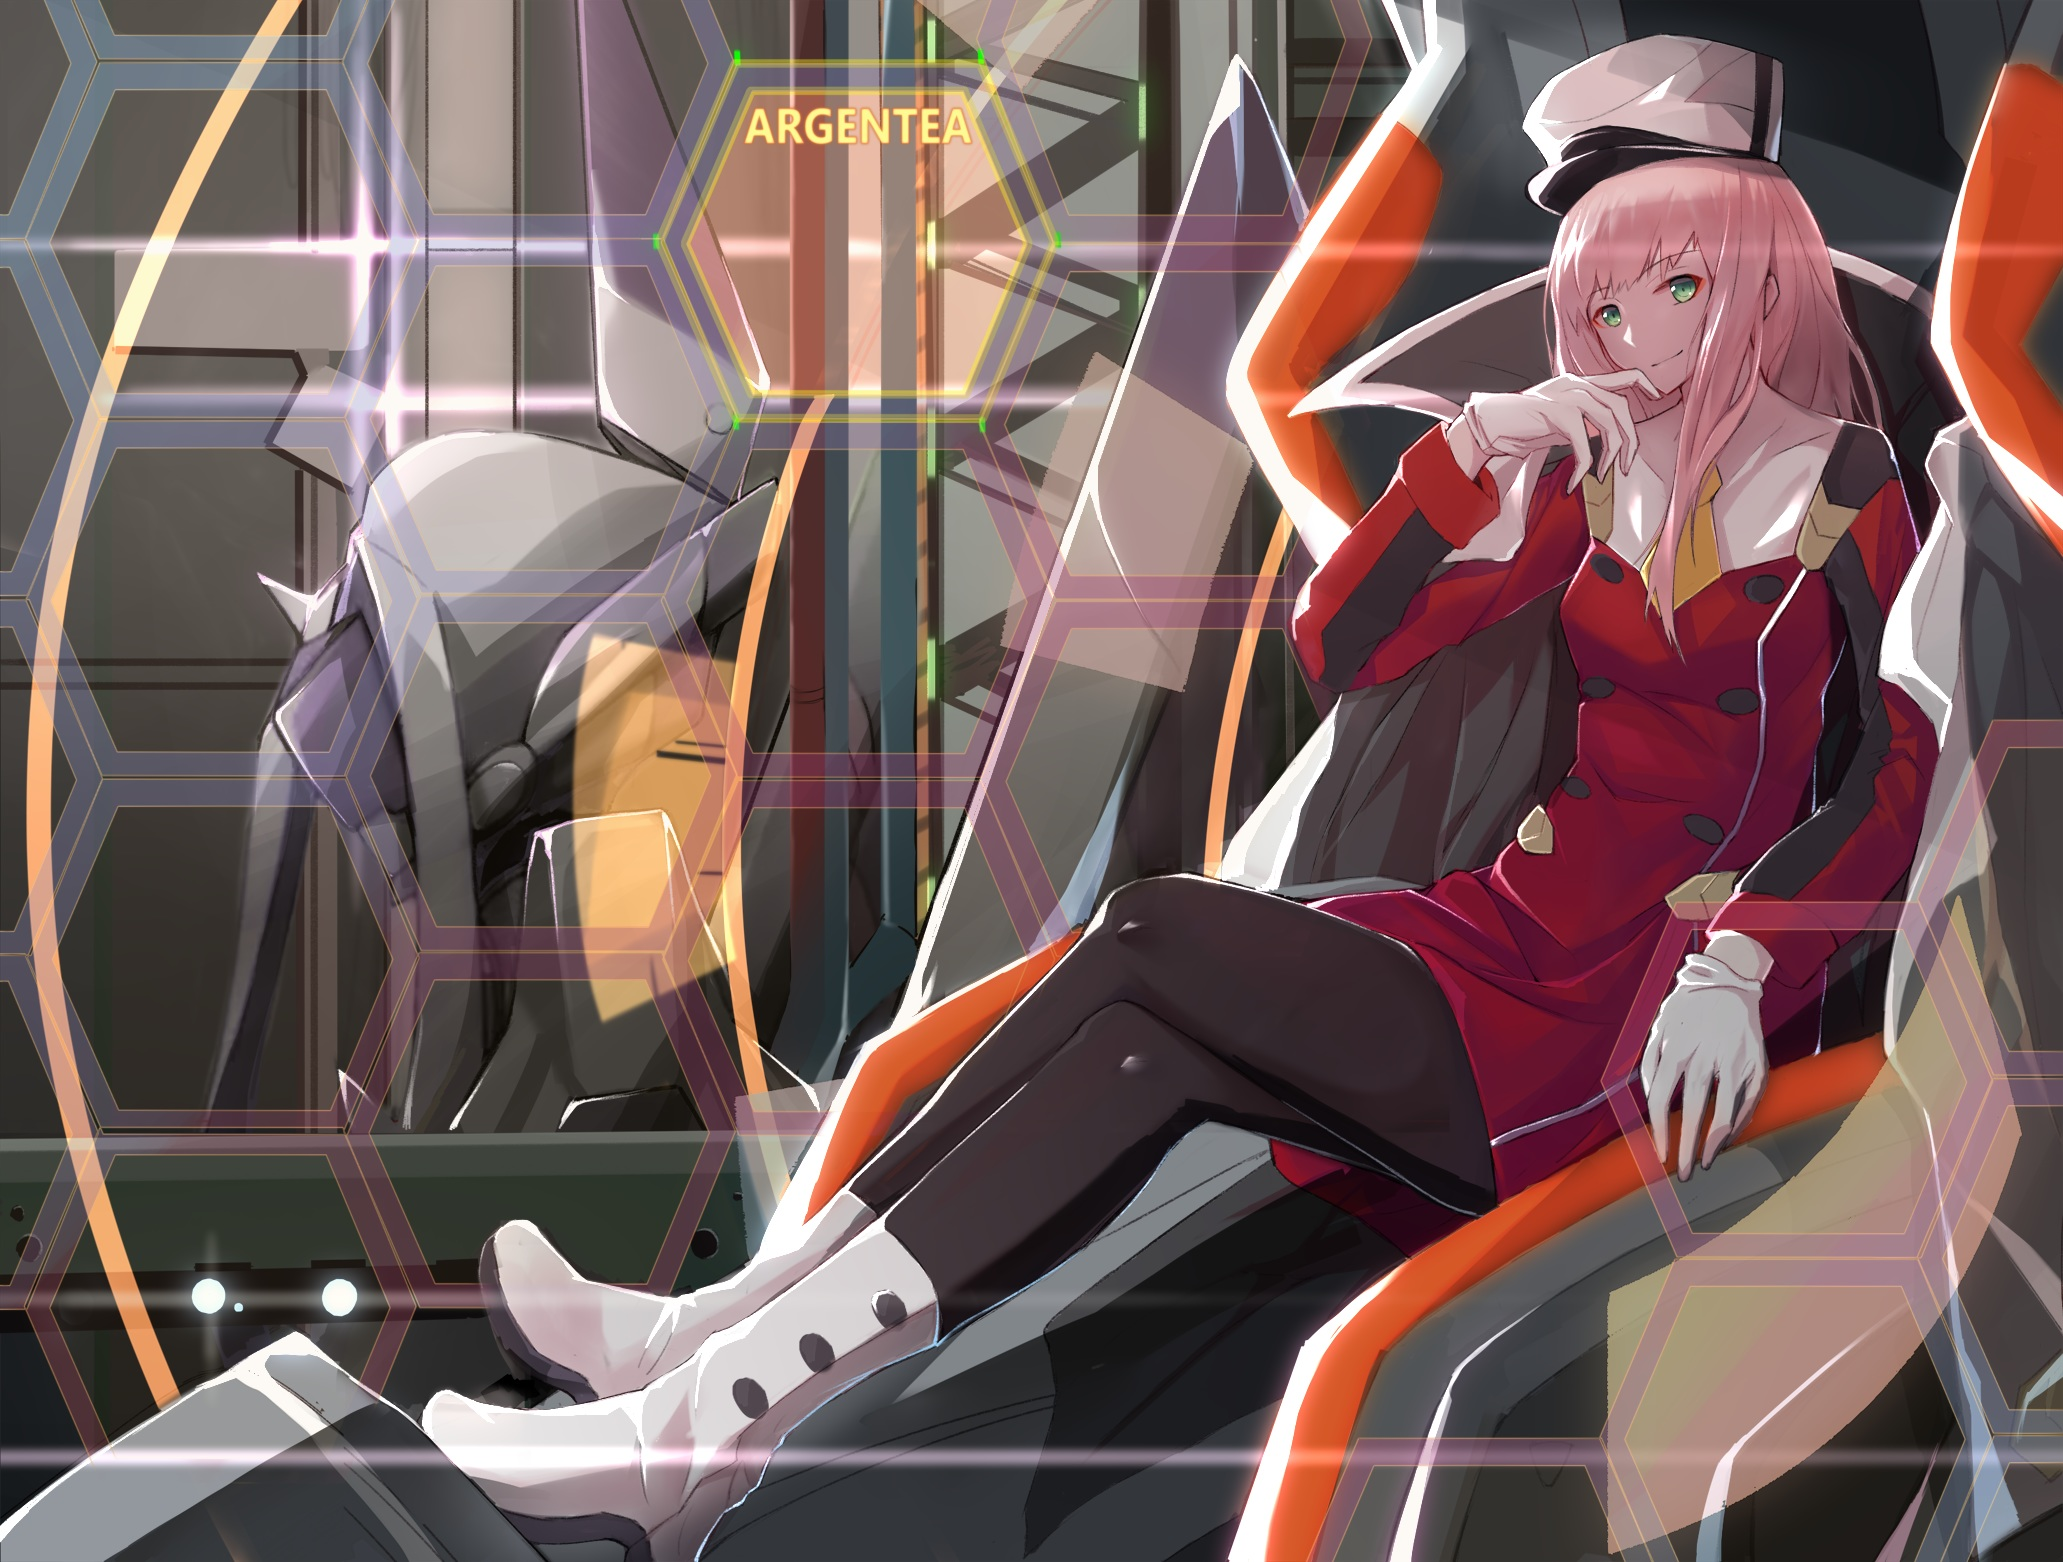 Darling In The Frankxx Tagme (artist) Tagme (character